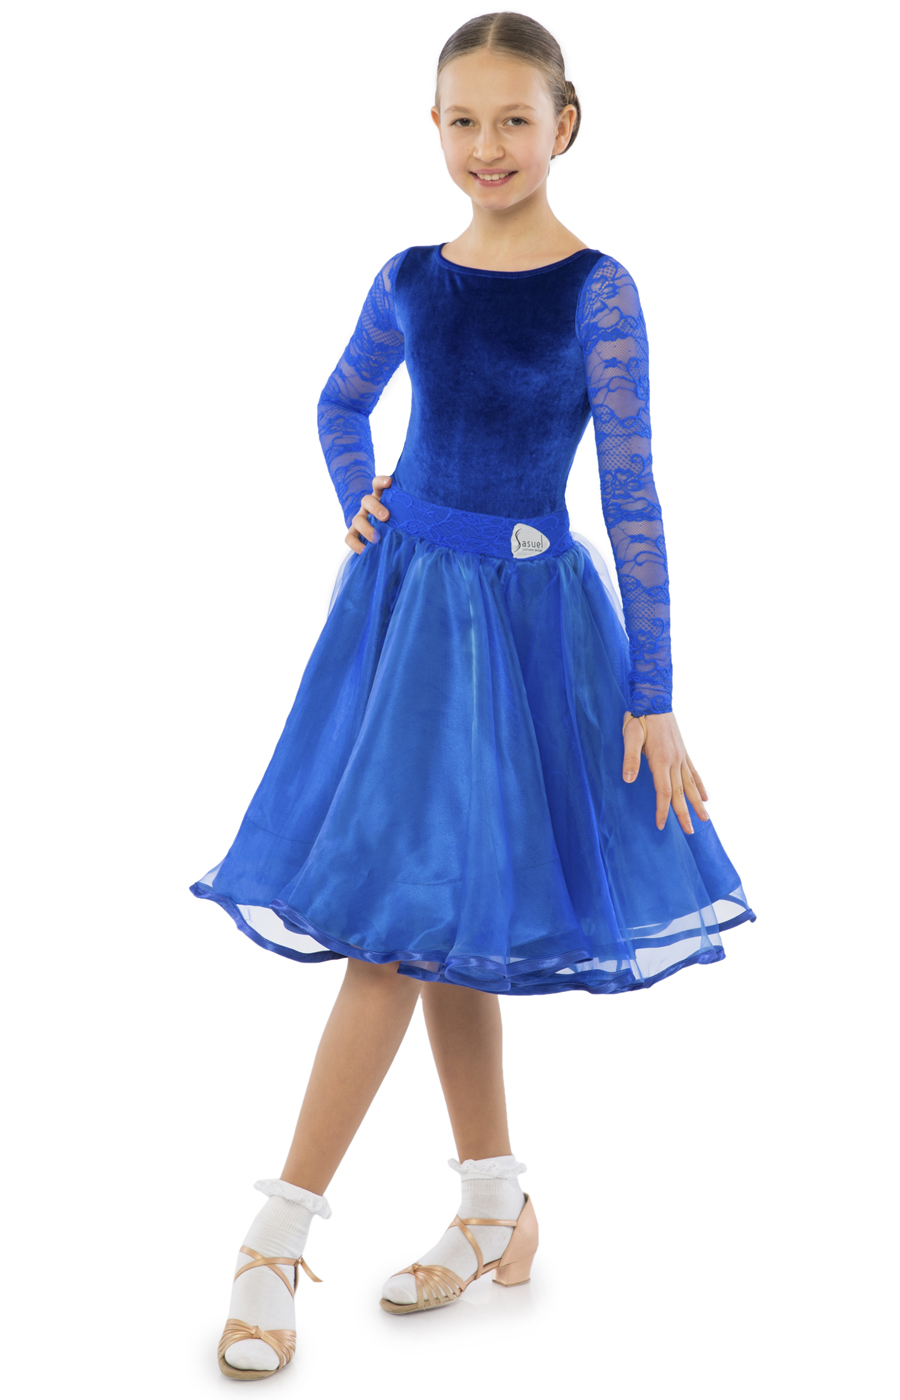 Teen Girl Practice Ballroom Violet Juvenile Dress